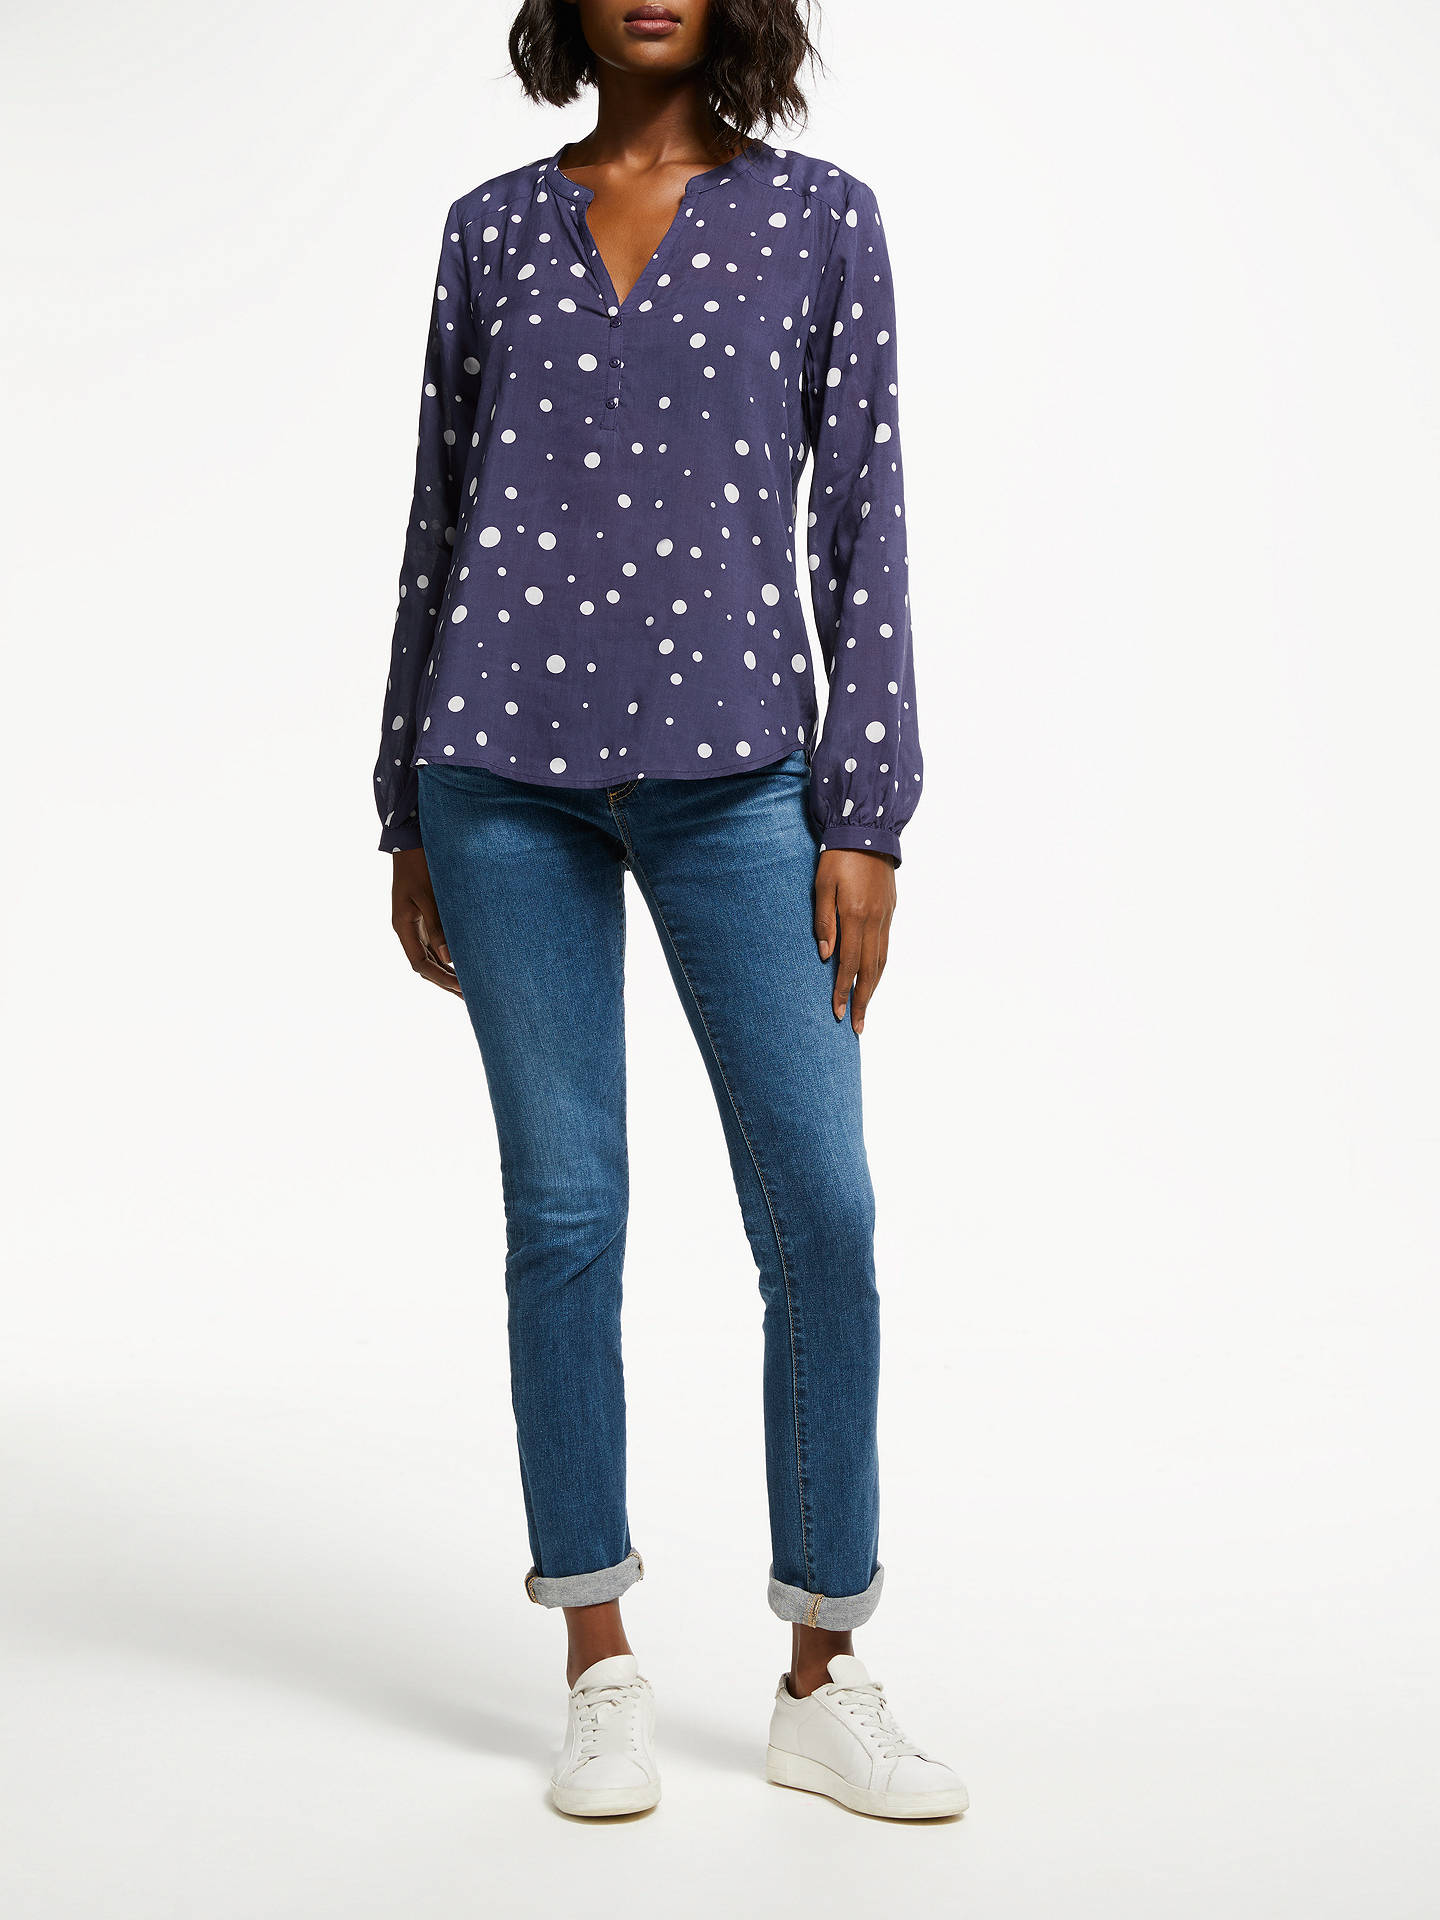 BuyPyrus Lizzie Spotted Print Blouse, Navy Dot, XS Online at johnlewis.com